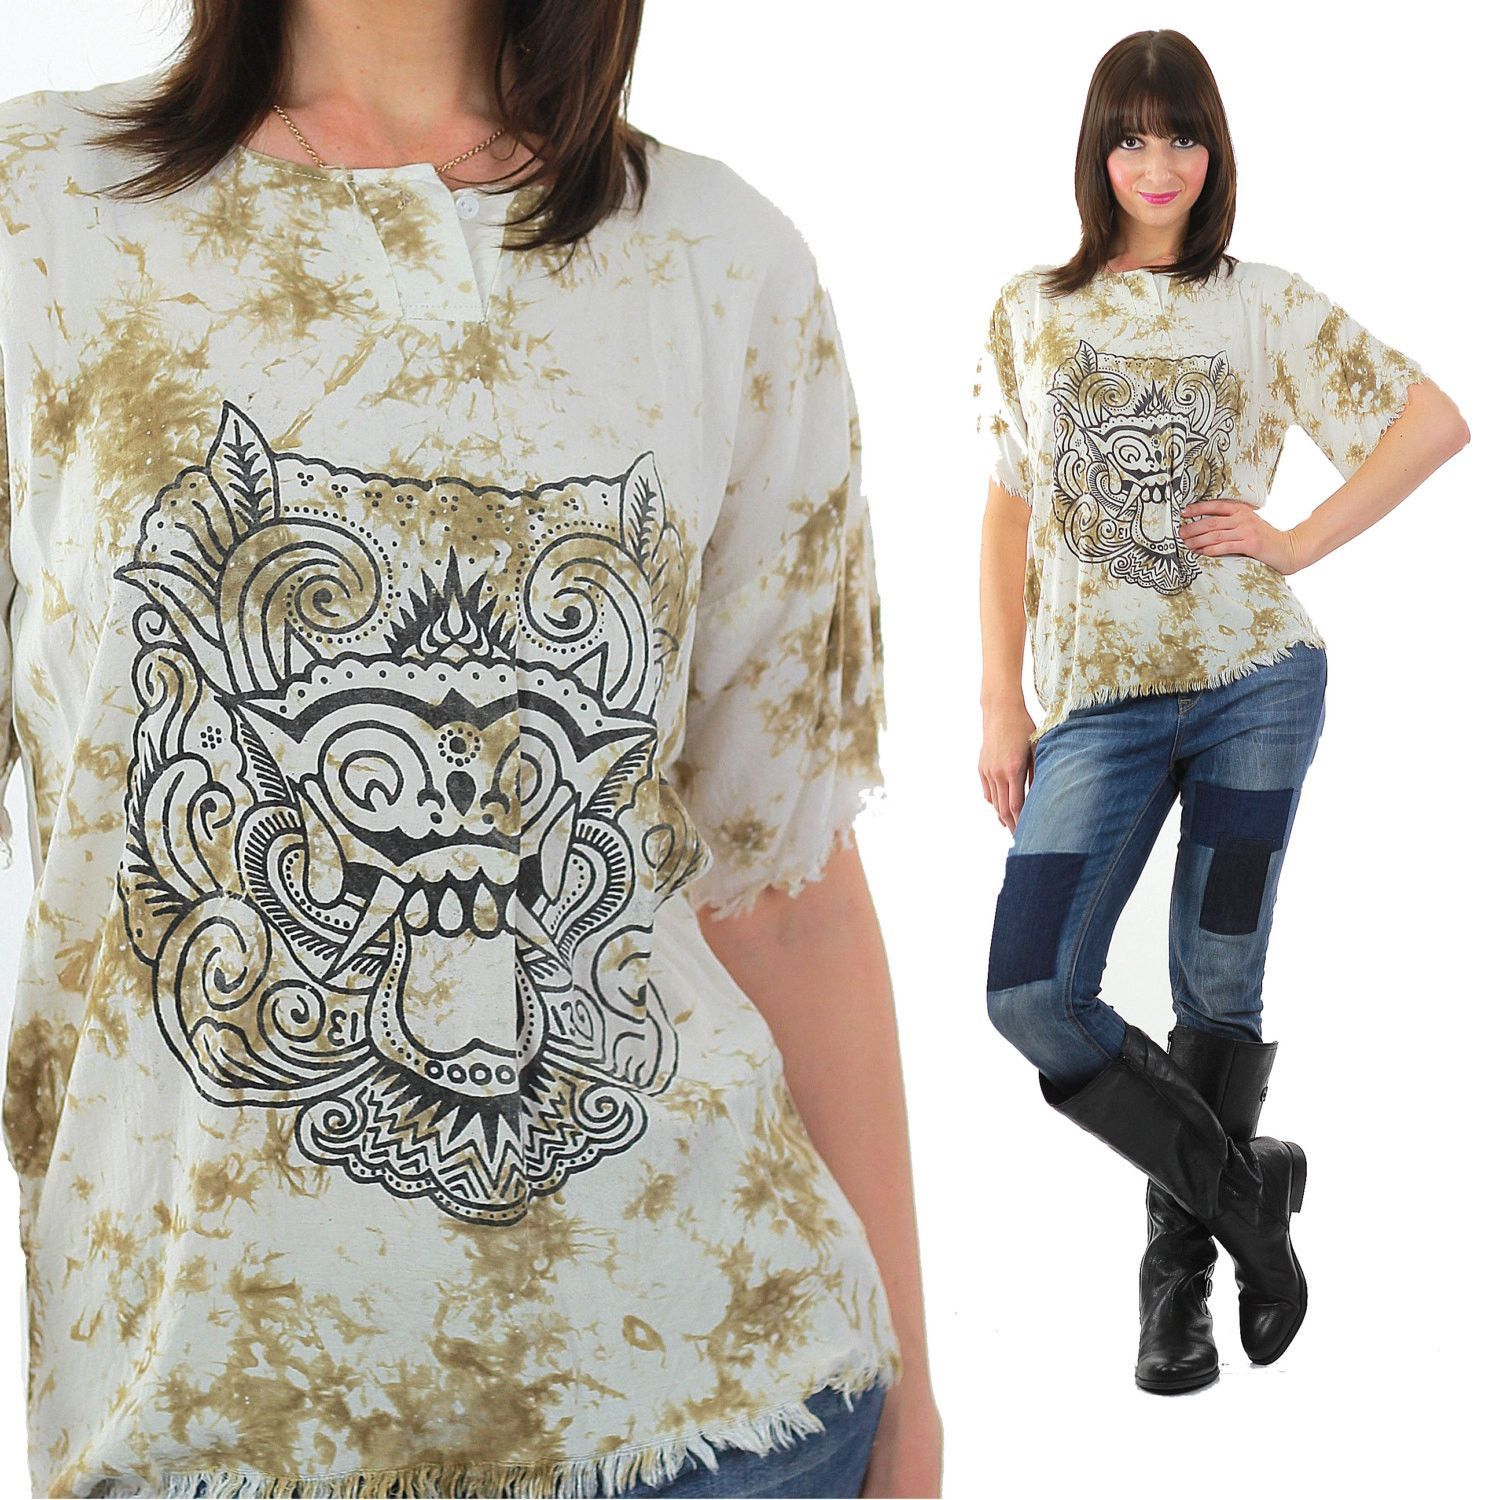 Vintage gothic Boho Gargoyle Top Shirt Goth Monster top Shirt Hippie Tie dye top shirt tunic Fringe Tunic Festival top Grunge top tunic M